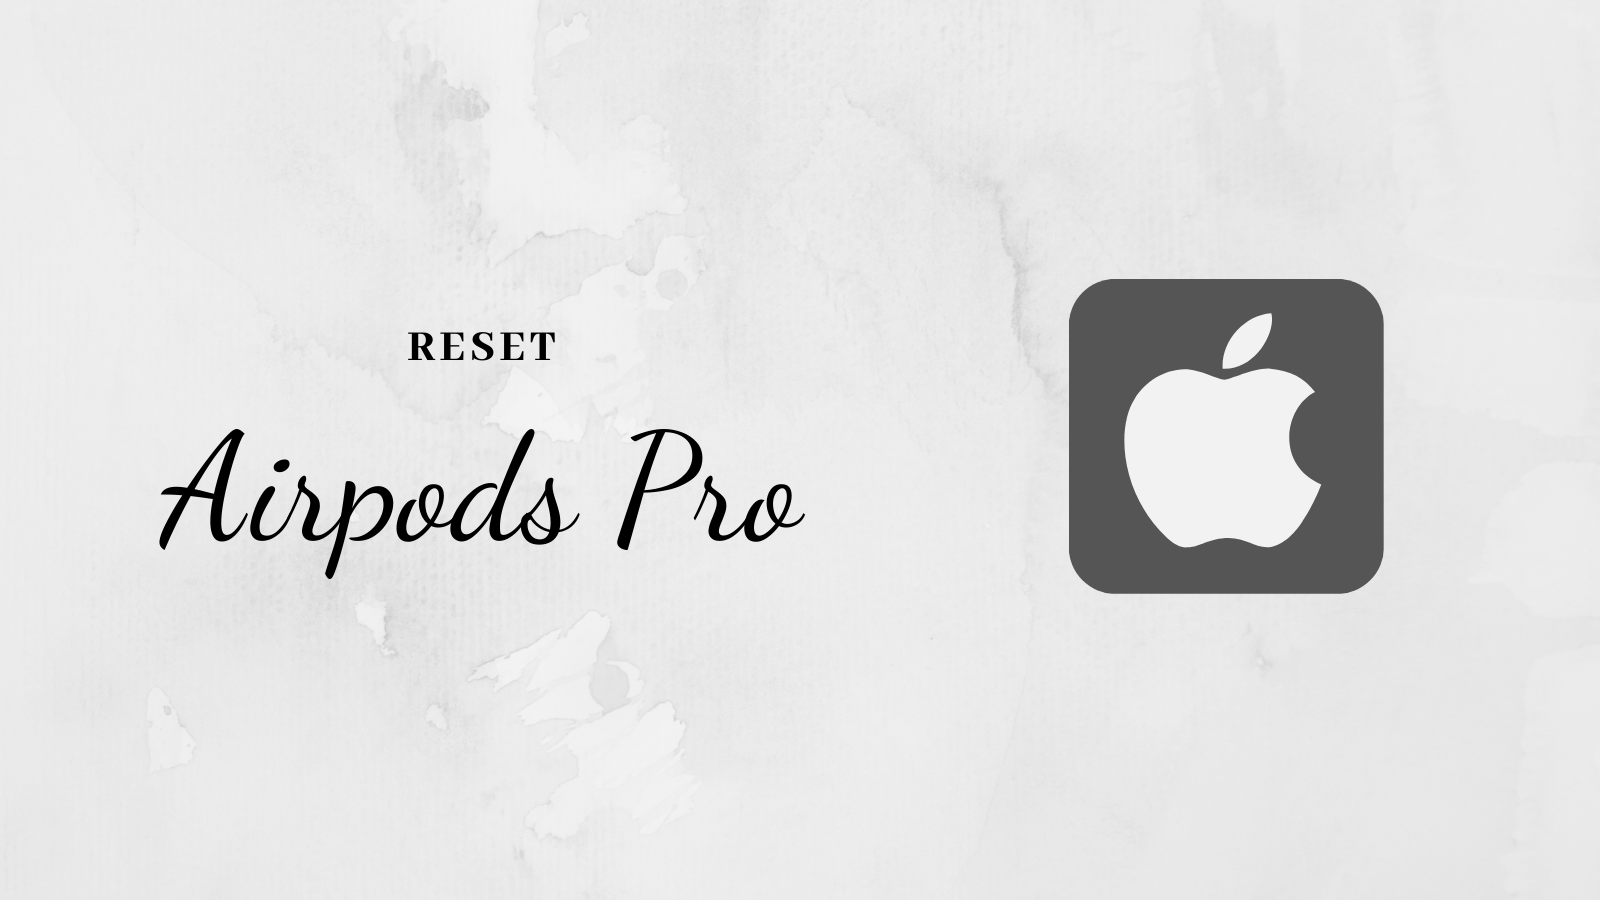 How to Reset AirPods Pro?